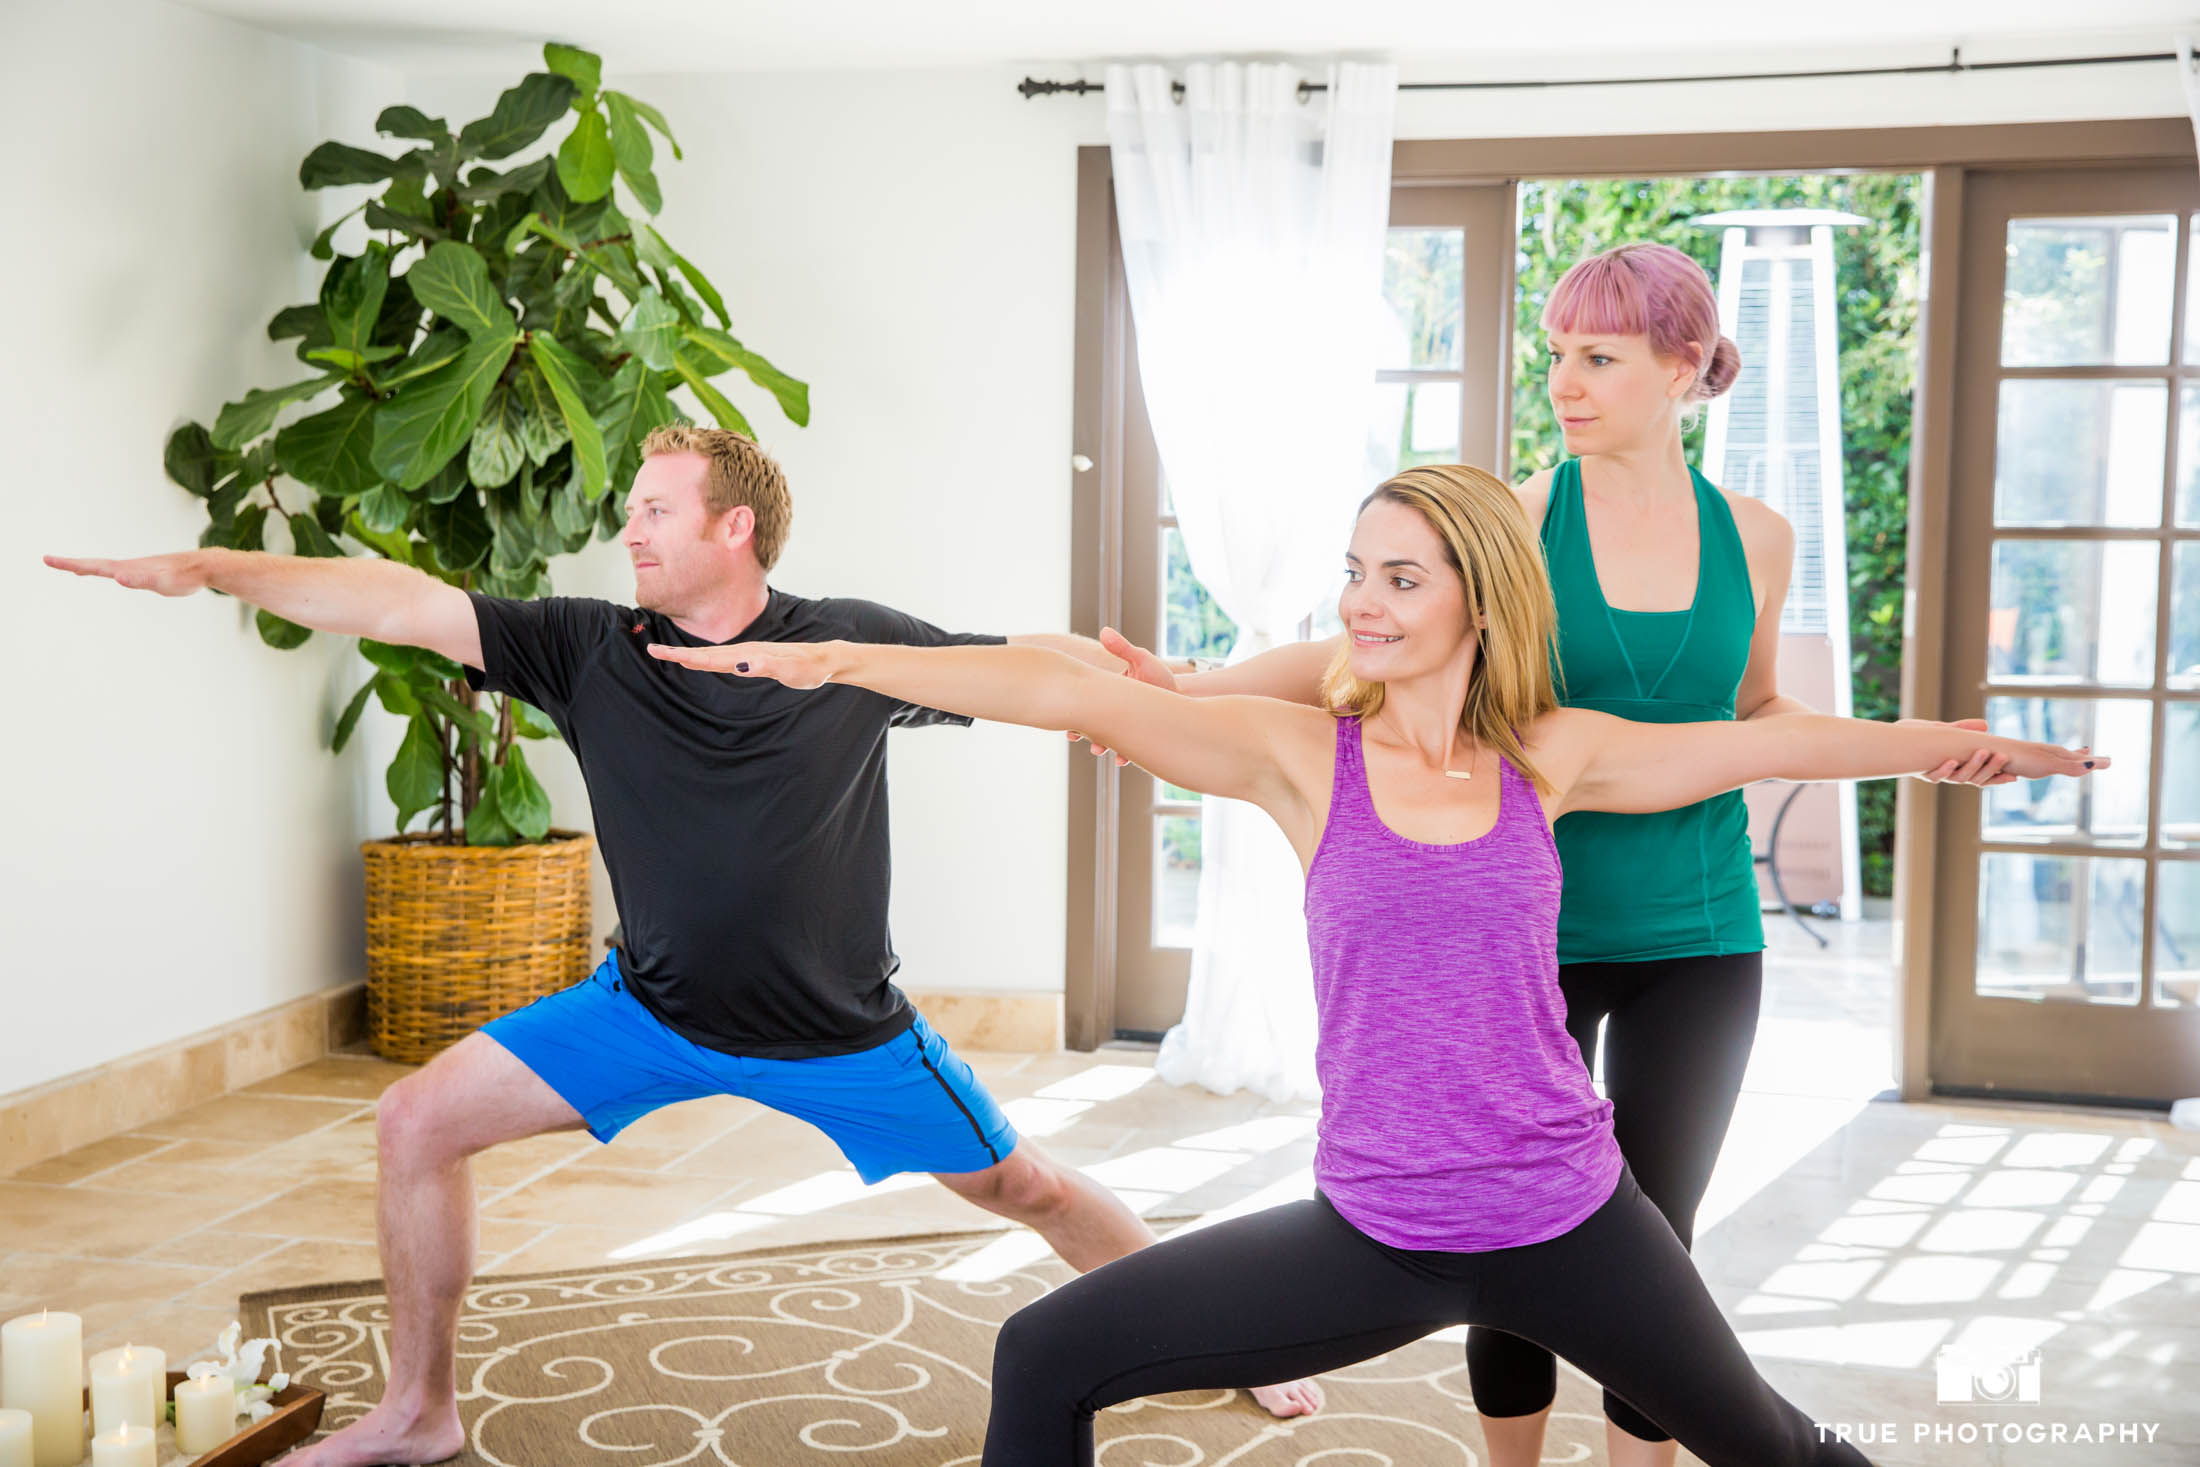 Yoga commercial photo shoot